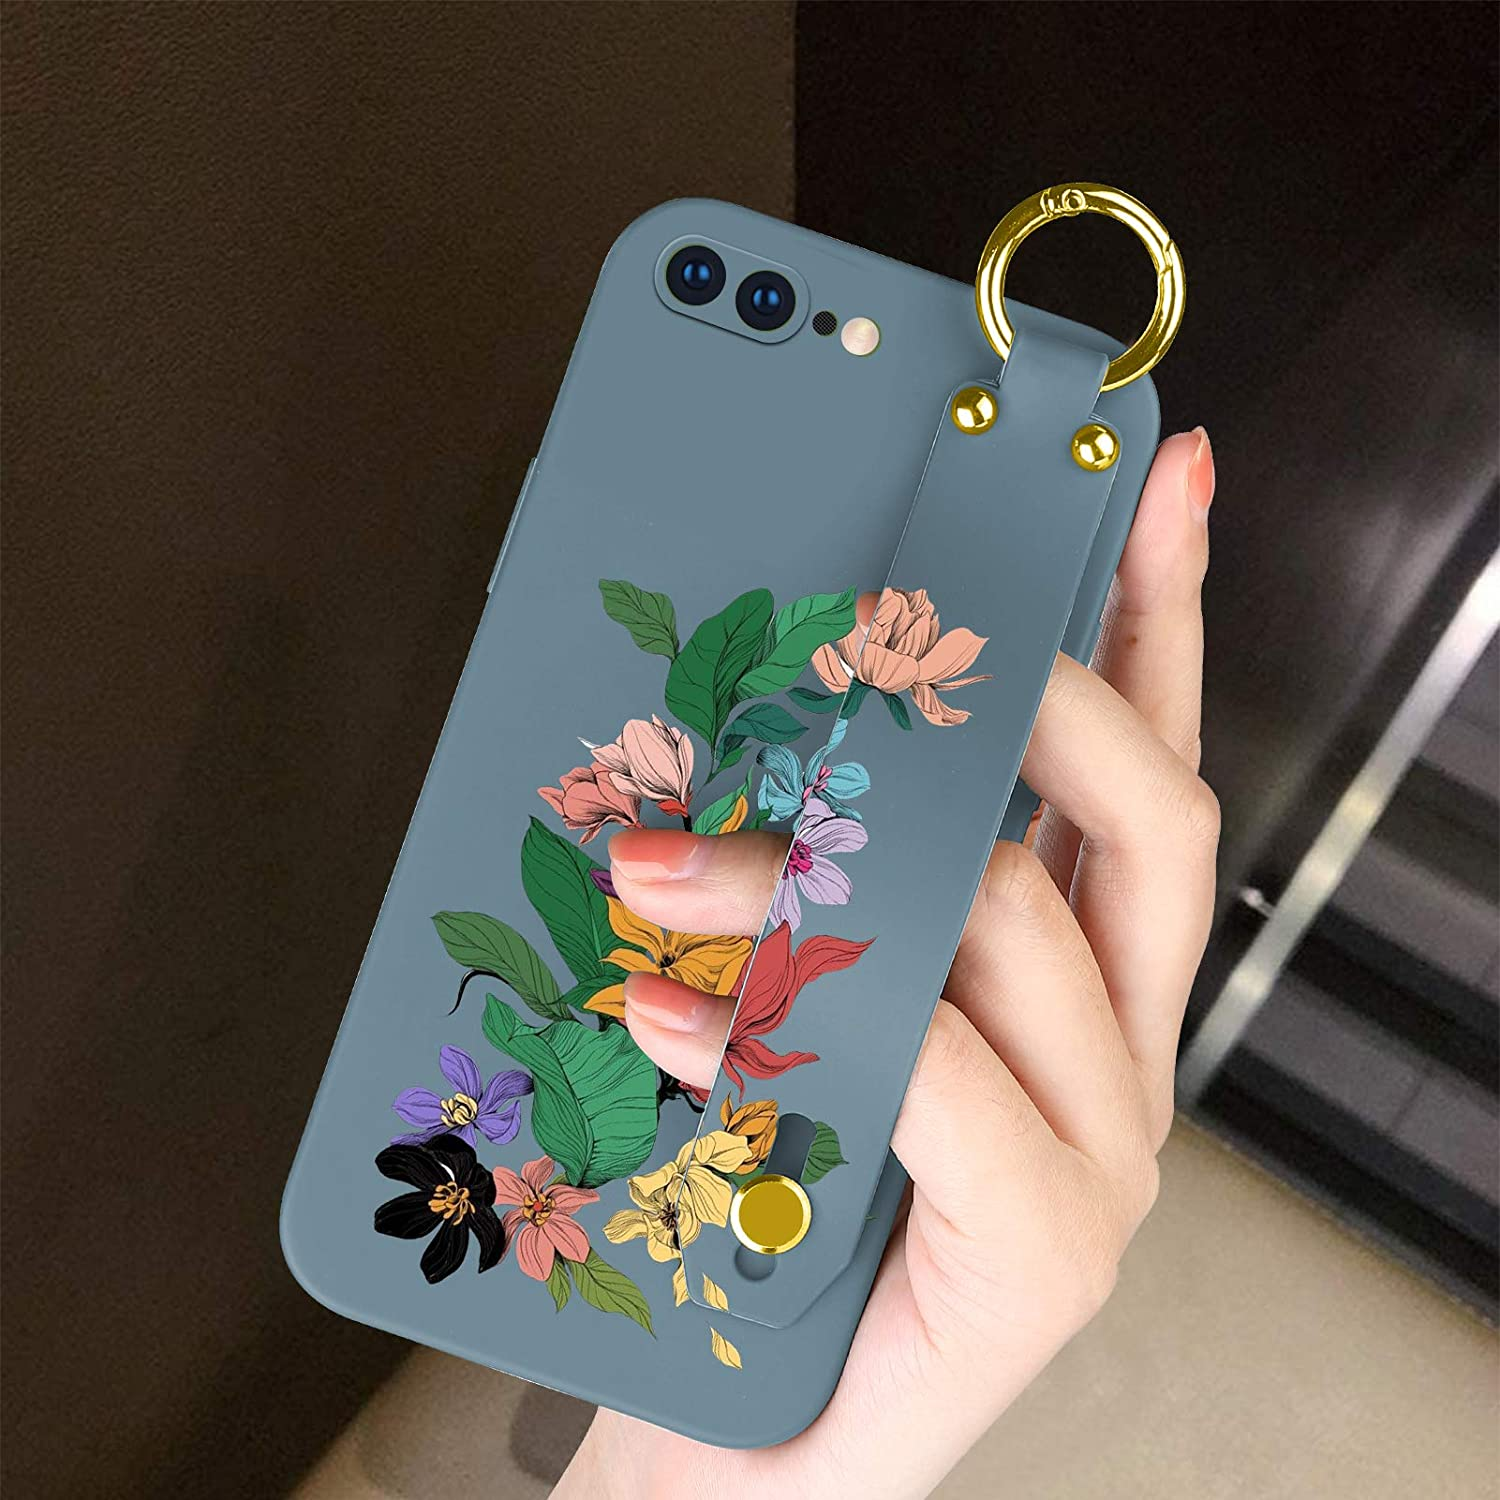 SAKUULO iPhone 8 Plus, iPhone 7 Plus Silicone Case with Wrist Strap Colorful Flowers Design Luxury Scratch Resistant Drop Protection Cover Slim Soft Case for iPhone 8 Plus, iPhone 7 Plus-Lavender Grey